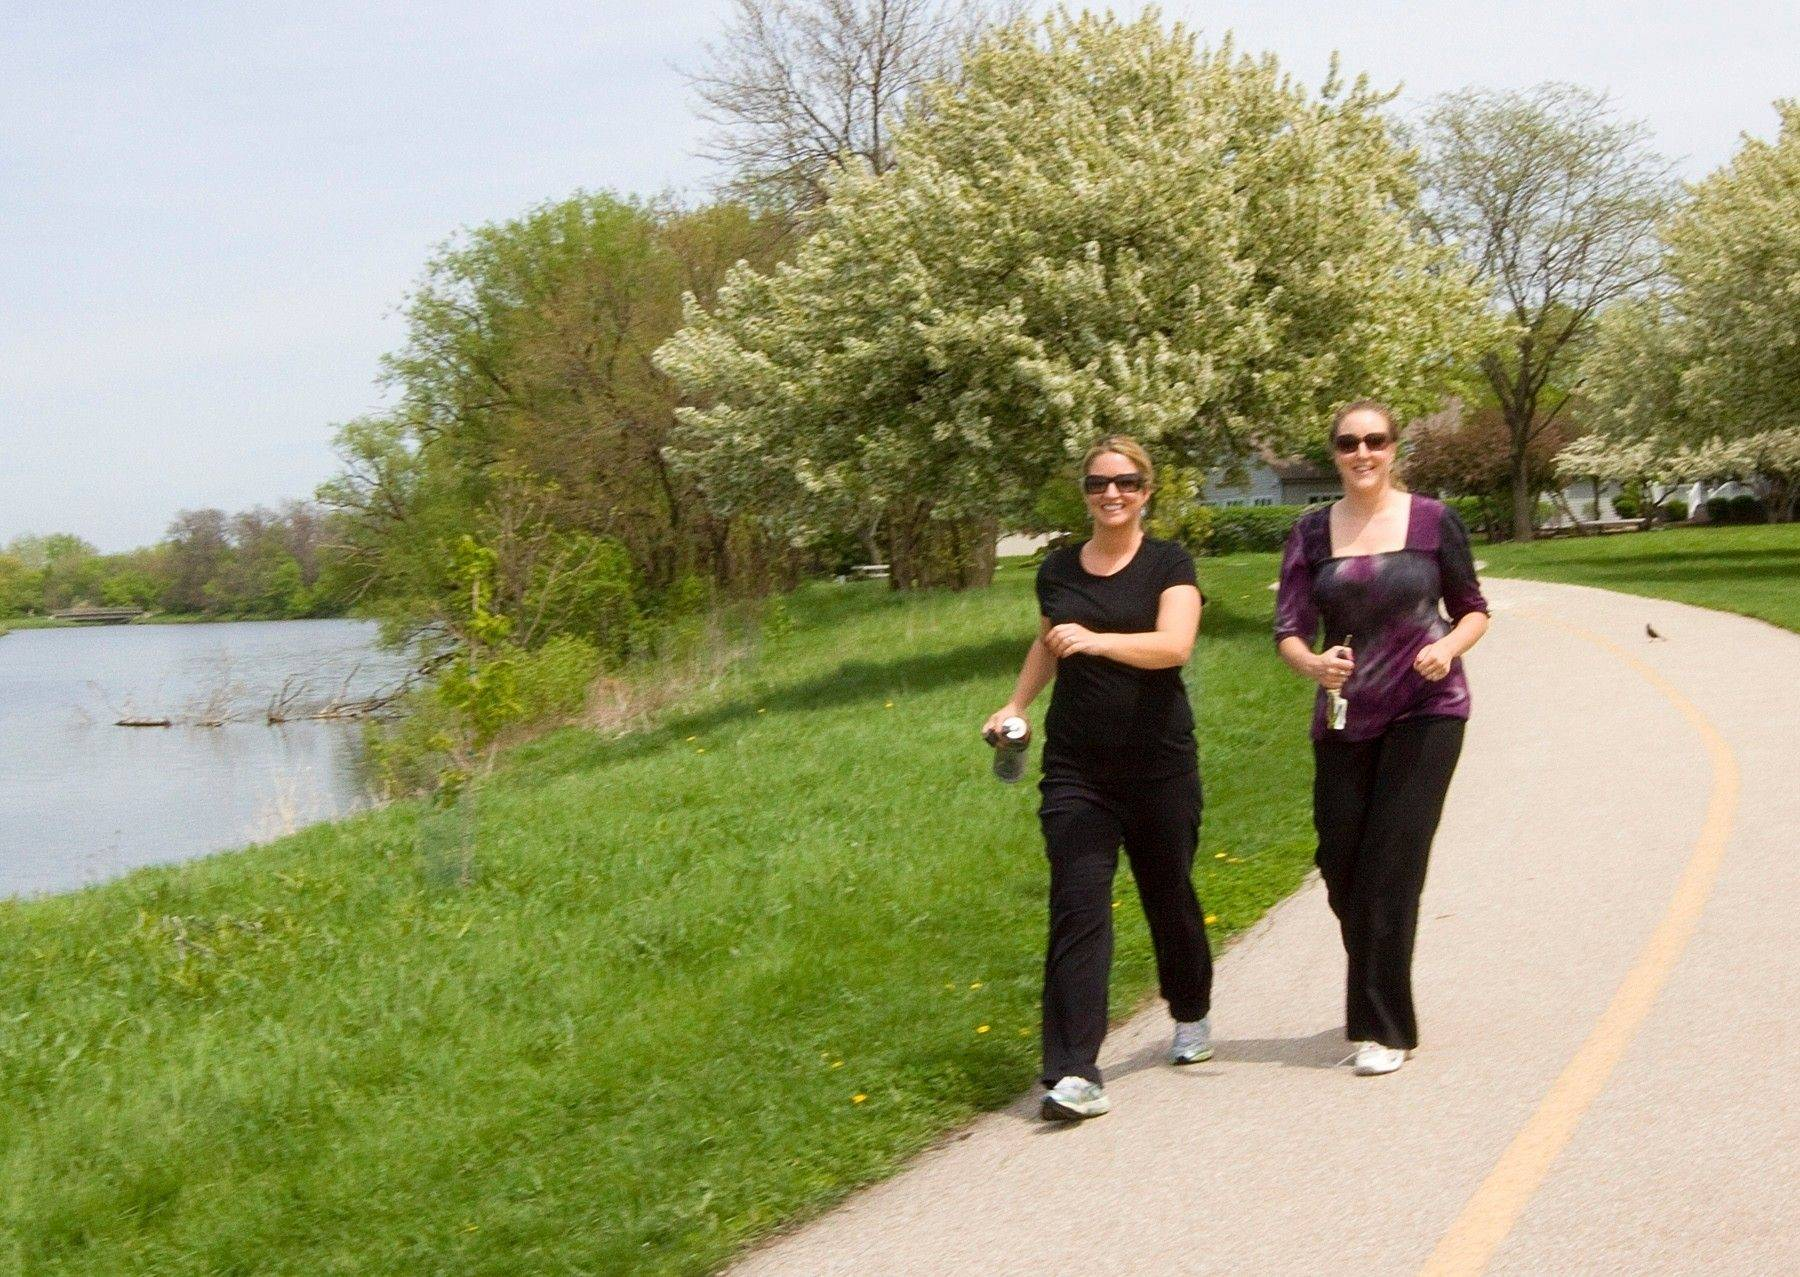 The popular trails at Waubonsie Lake will soon connect with new trails to the southwest when Waubonsie Creek Park is constructed - one of numerous projects the Fox Valley Park District is working on this season.